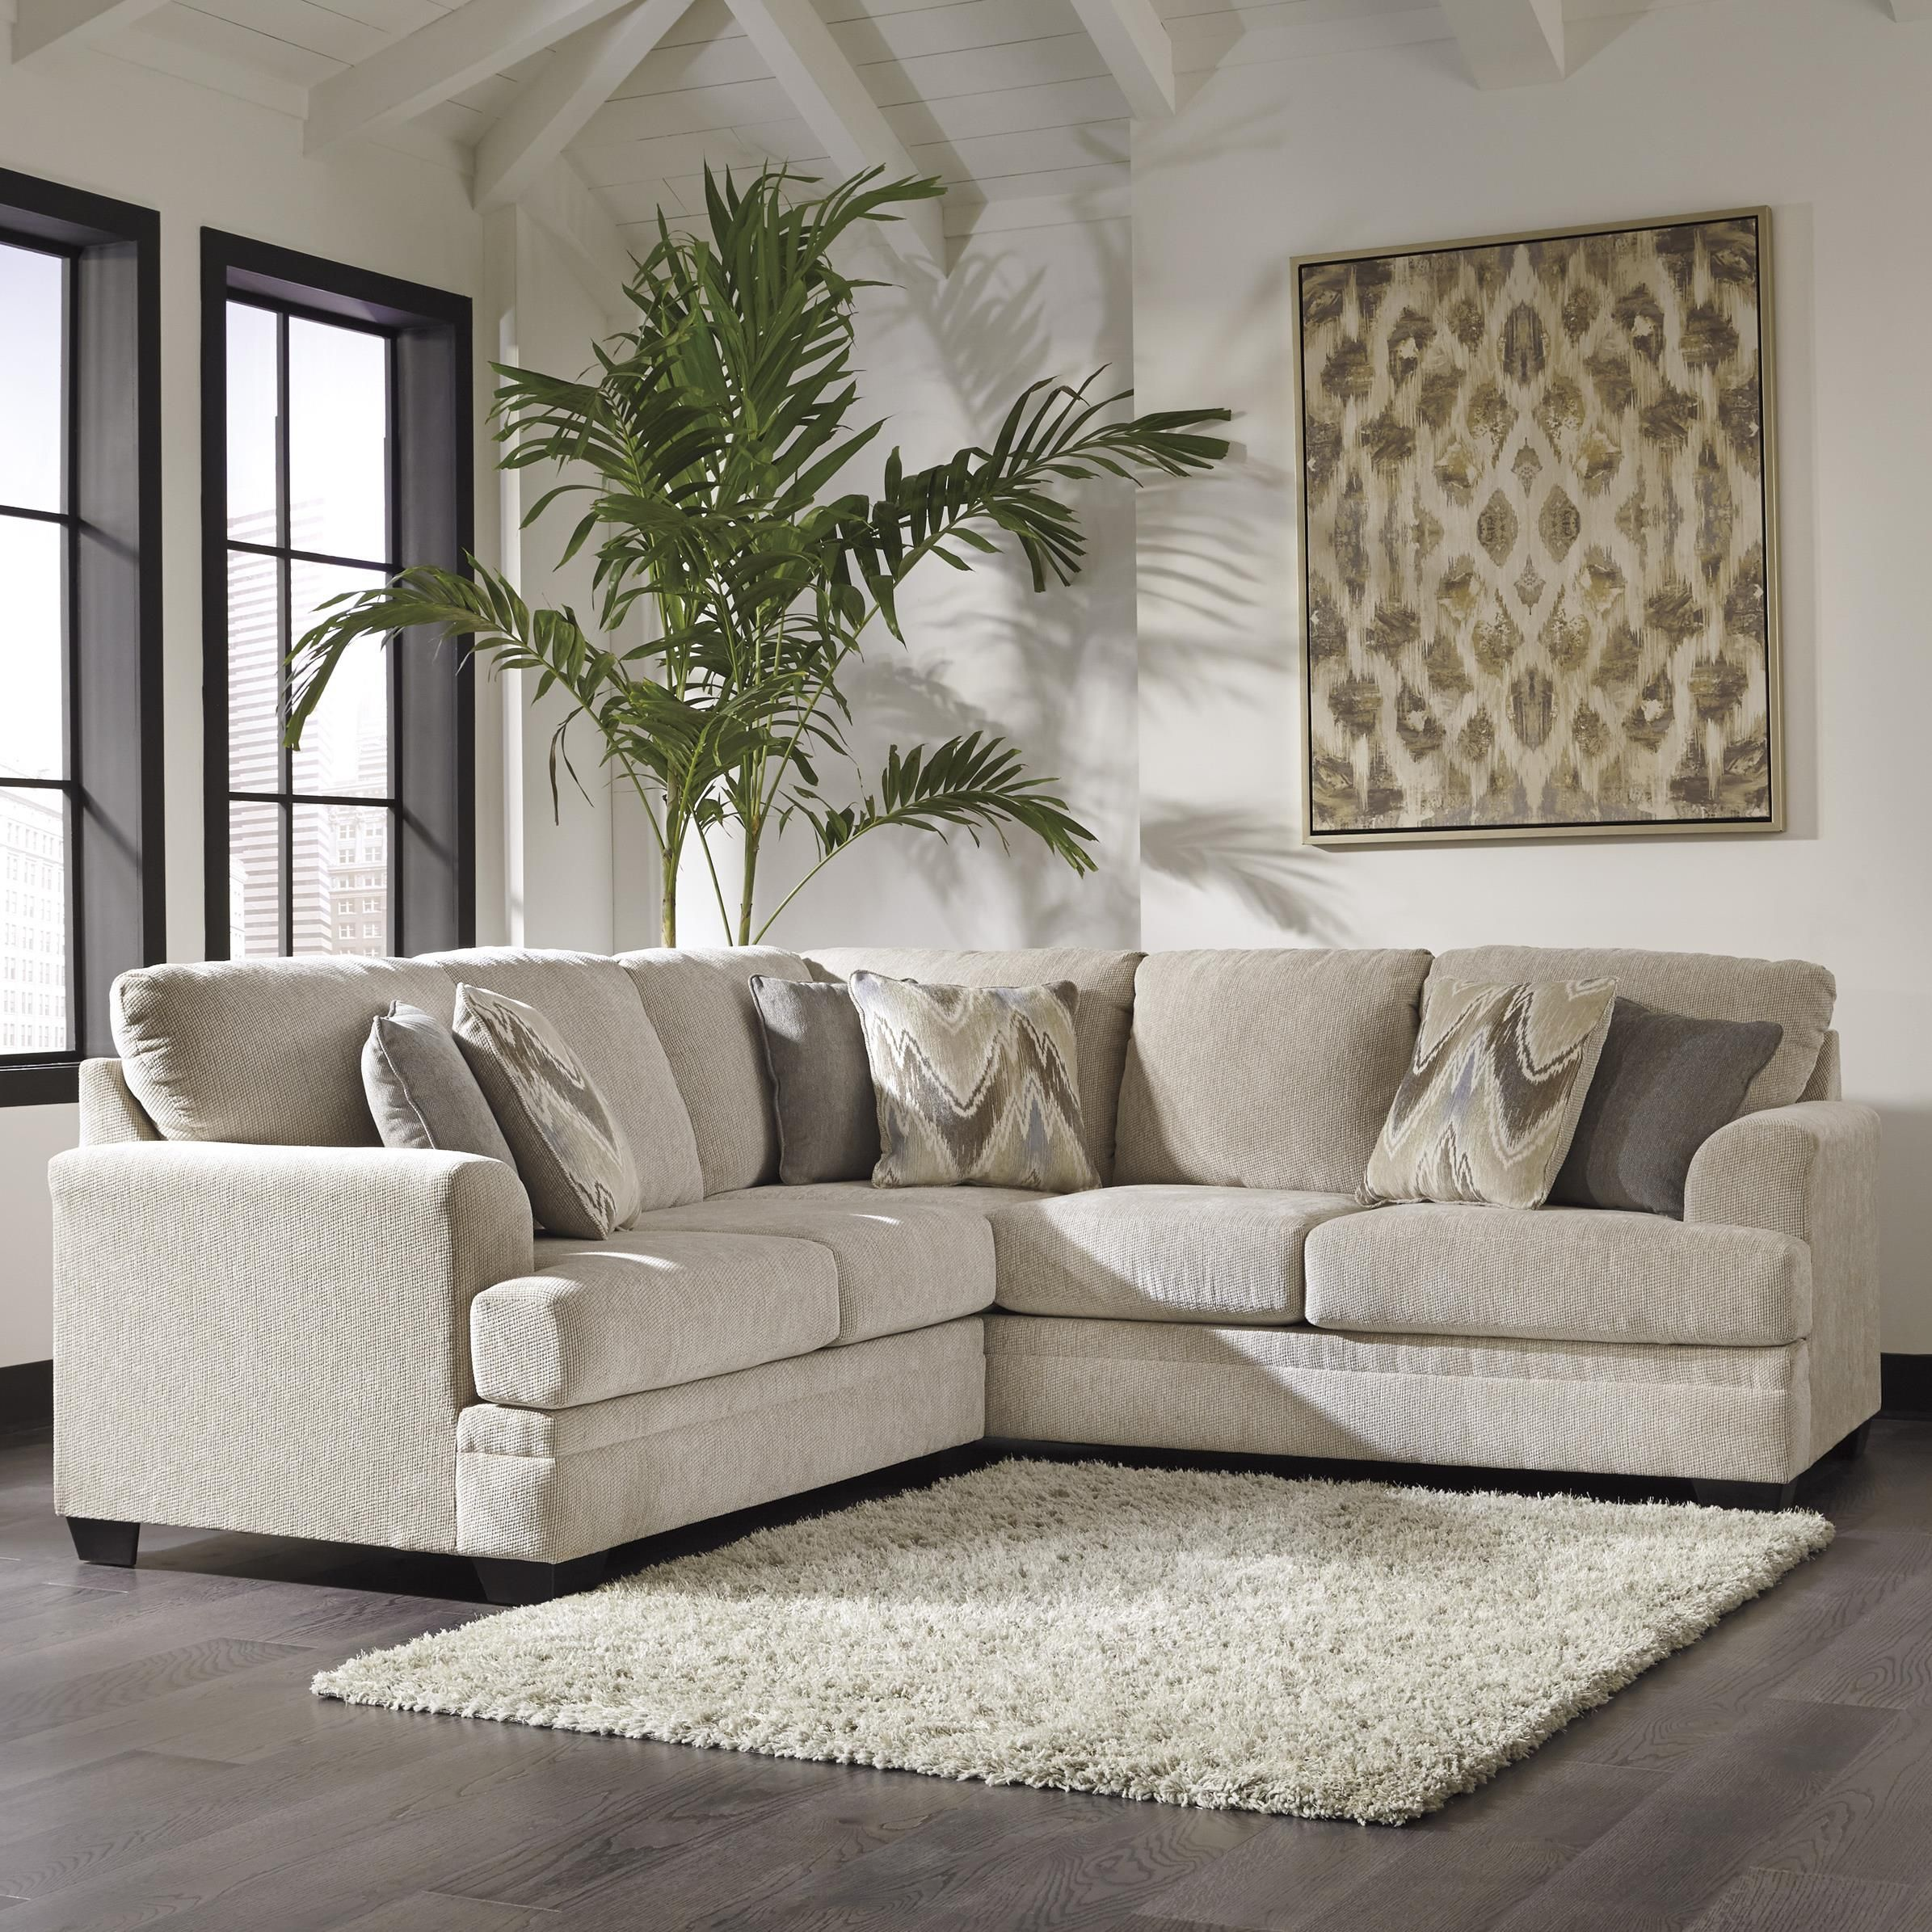 sofas ideas awesome couch design angled arezzo couches sectional rotmans inspirational style best with of modular modern sofa